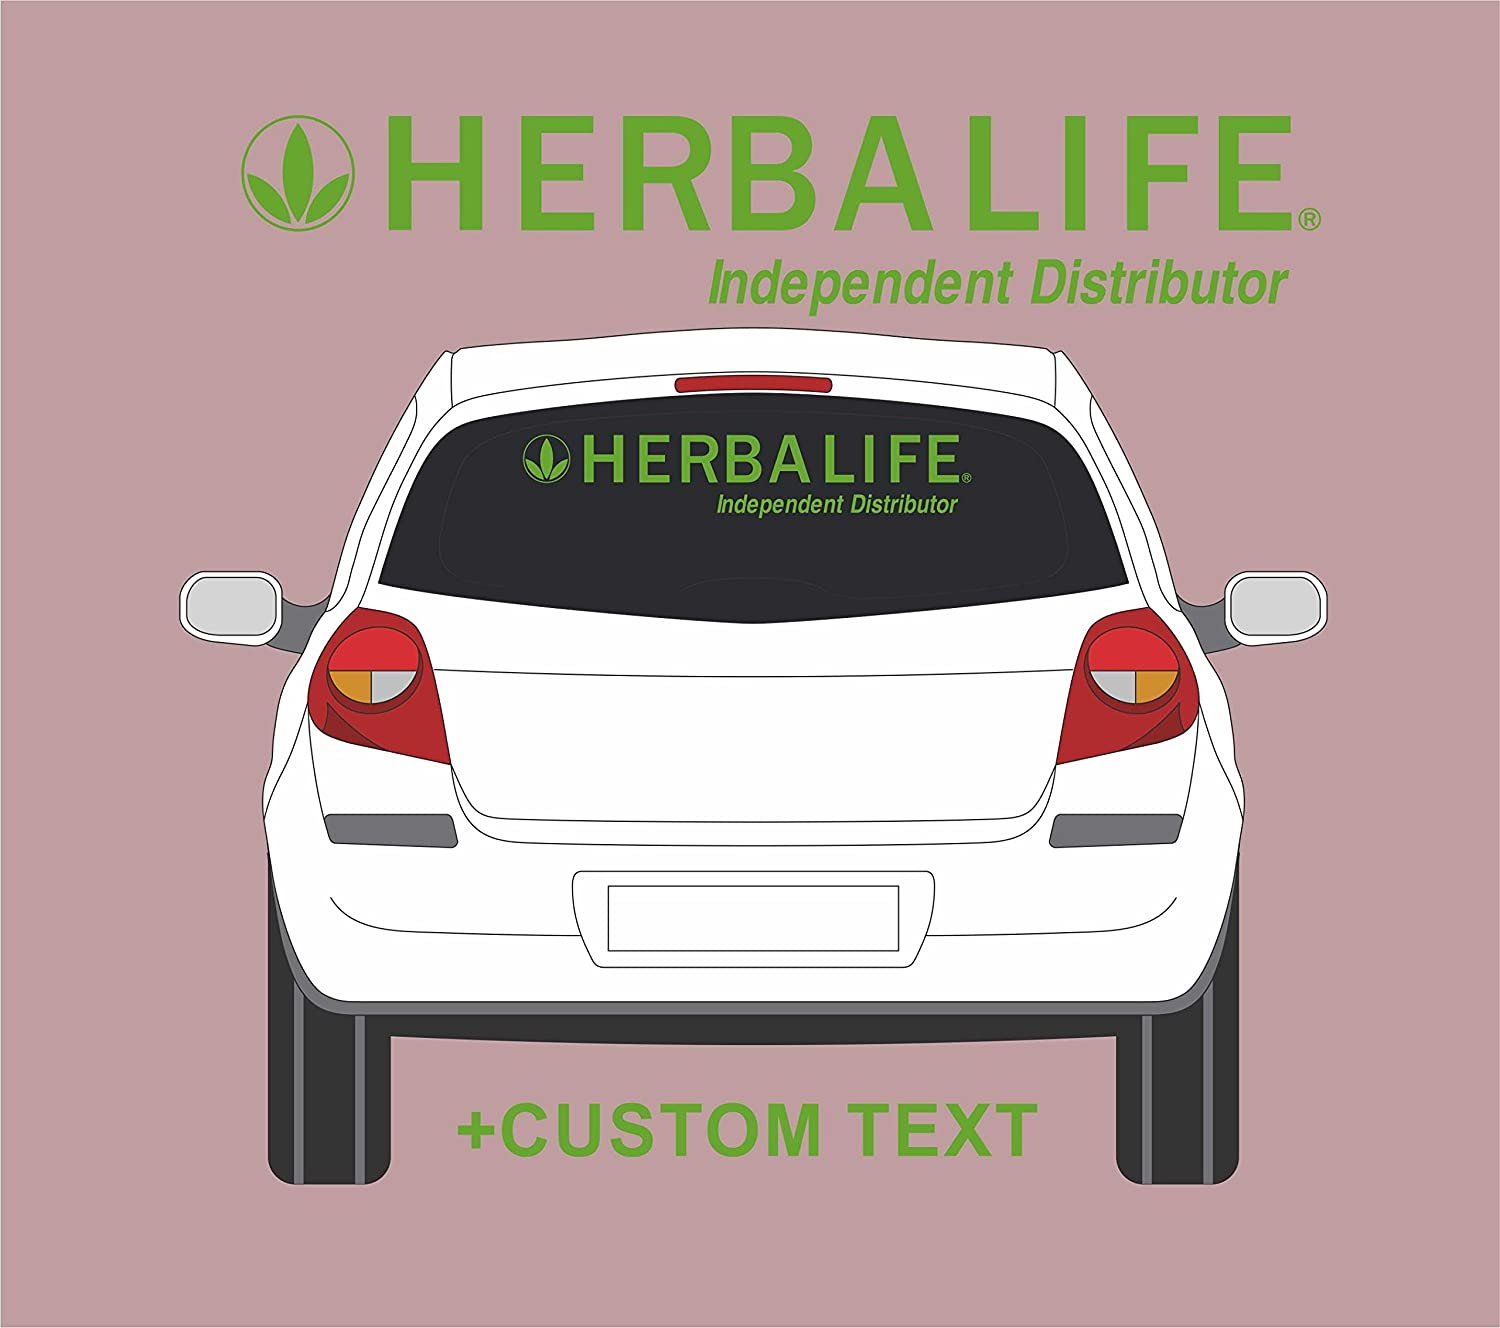 Herbalife Distribuidor de Independiente para ventanillas de ...